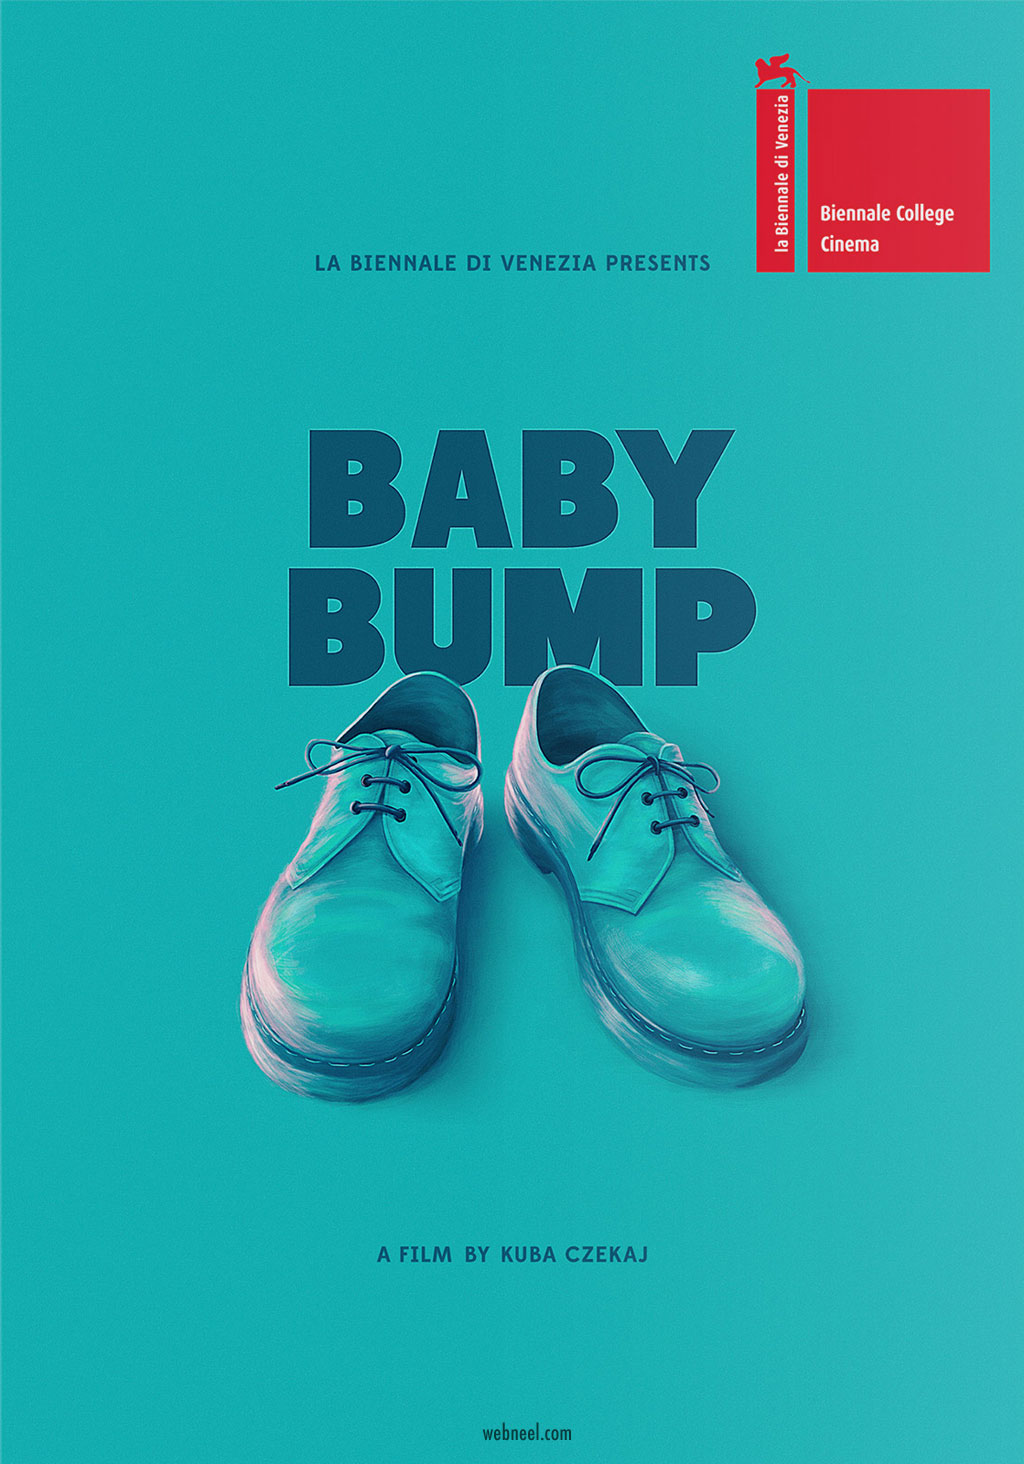 movie poster design baby bump iconography